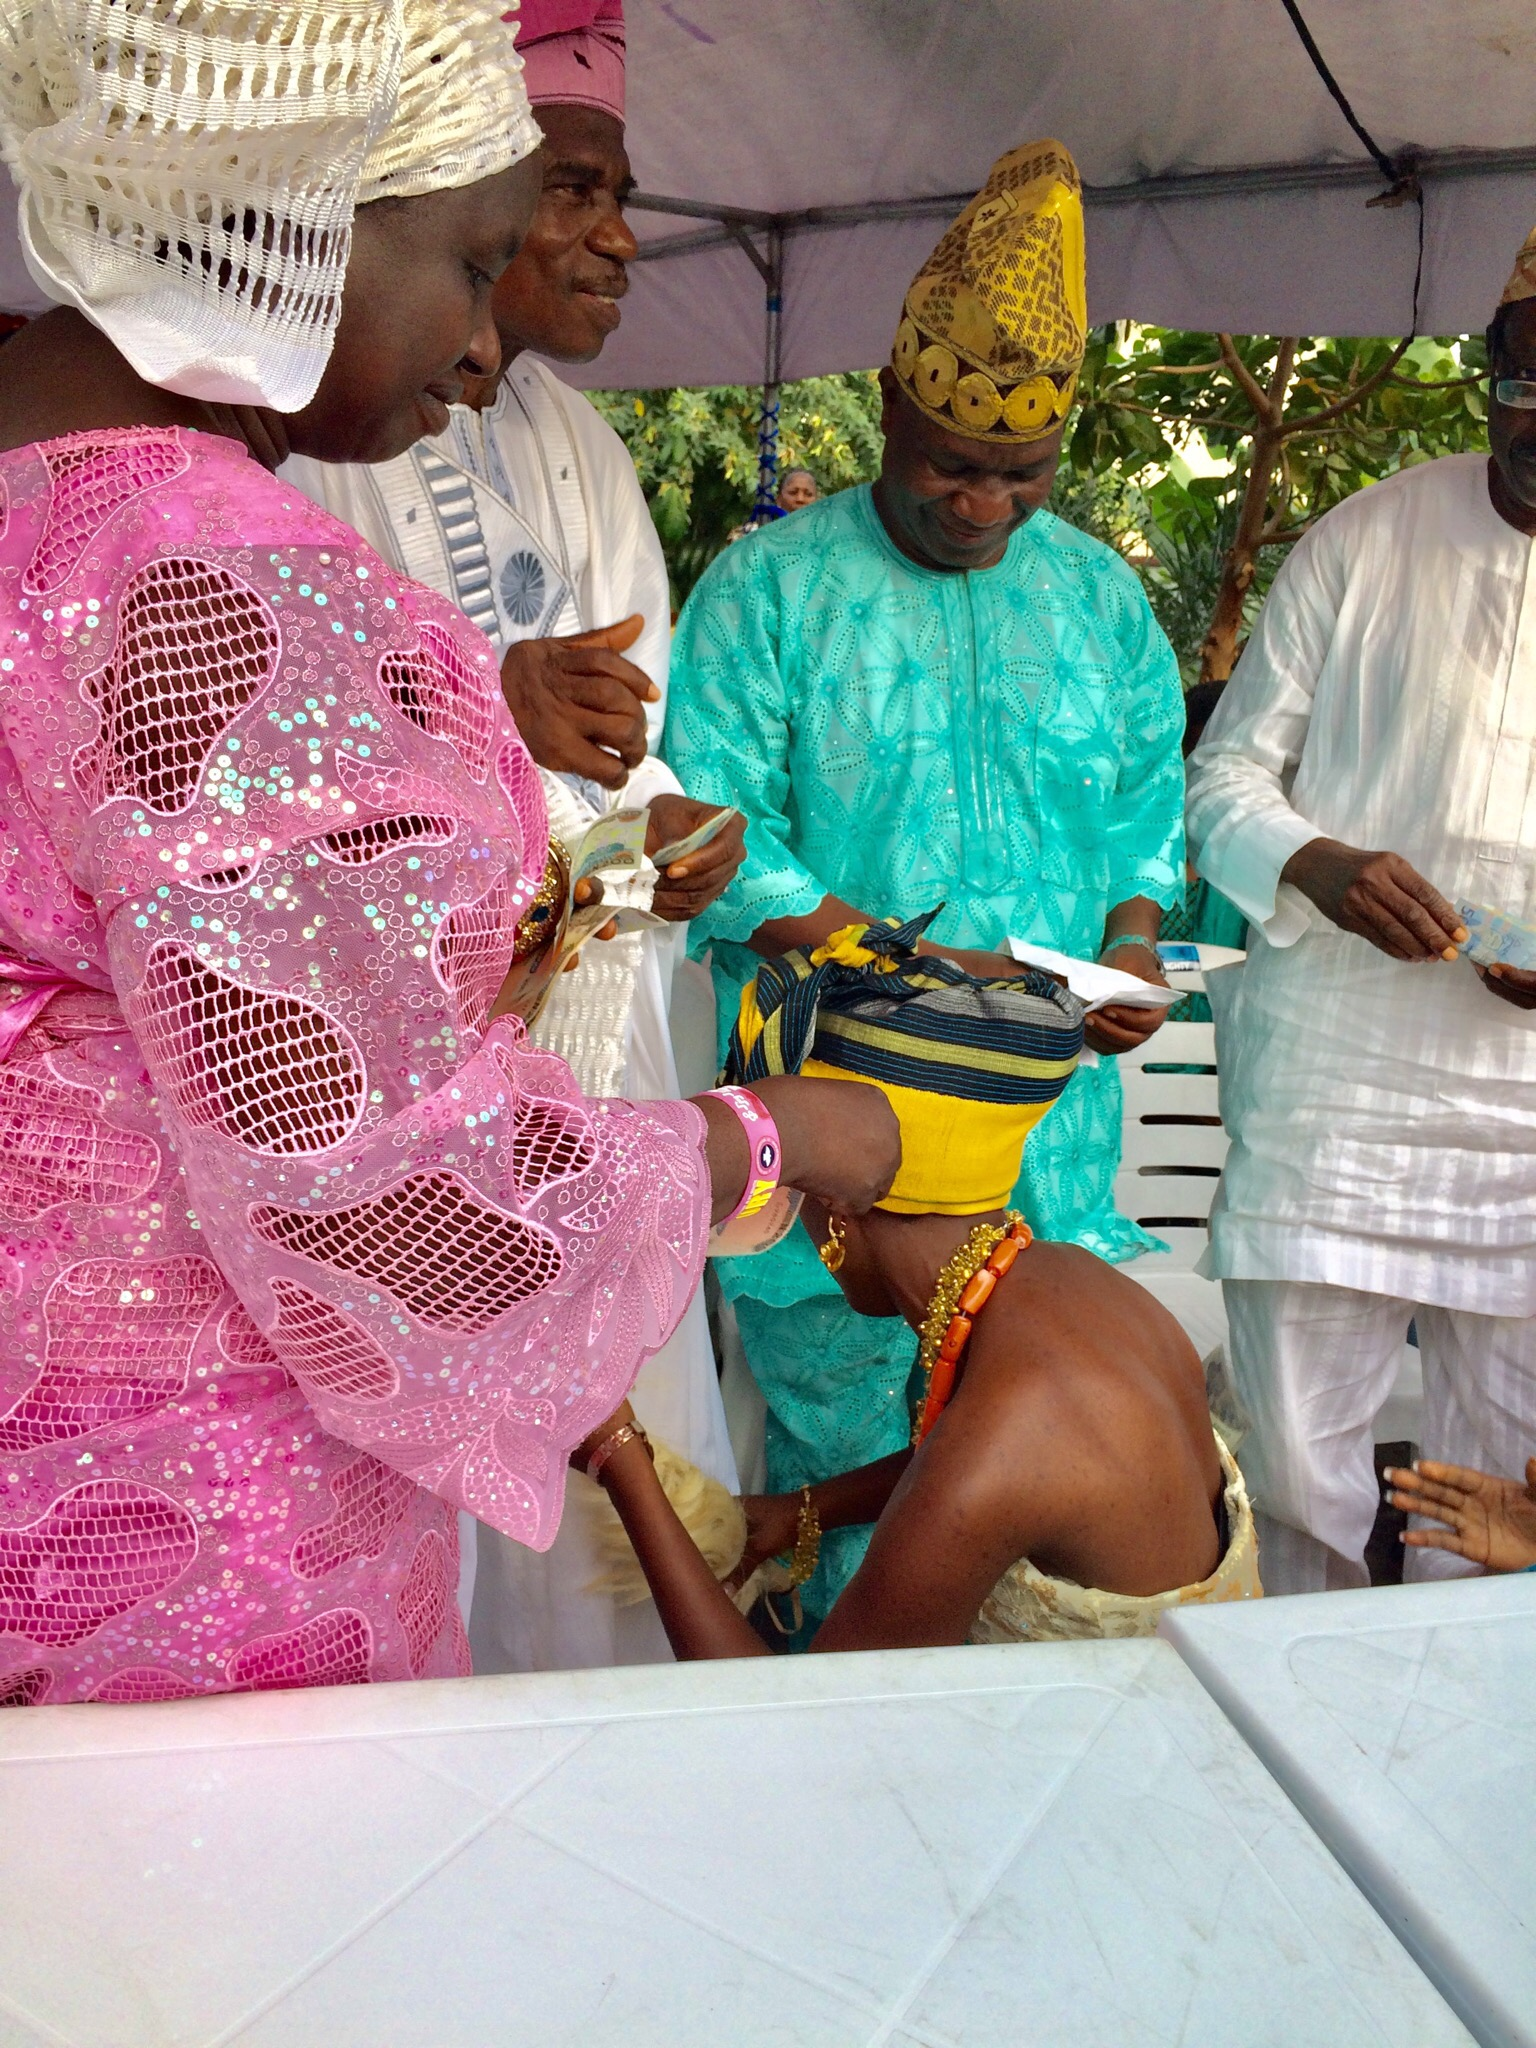 Groom's (Deji's) parents spraying money on the bride (Kedono, Jummai)